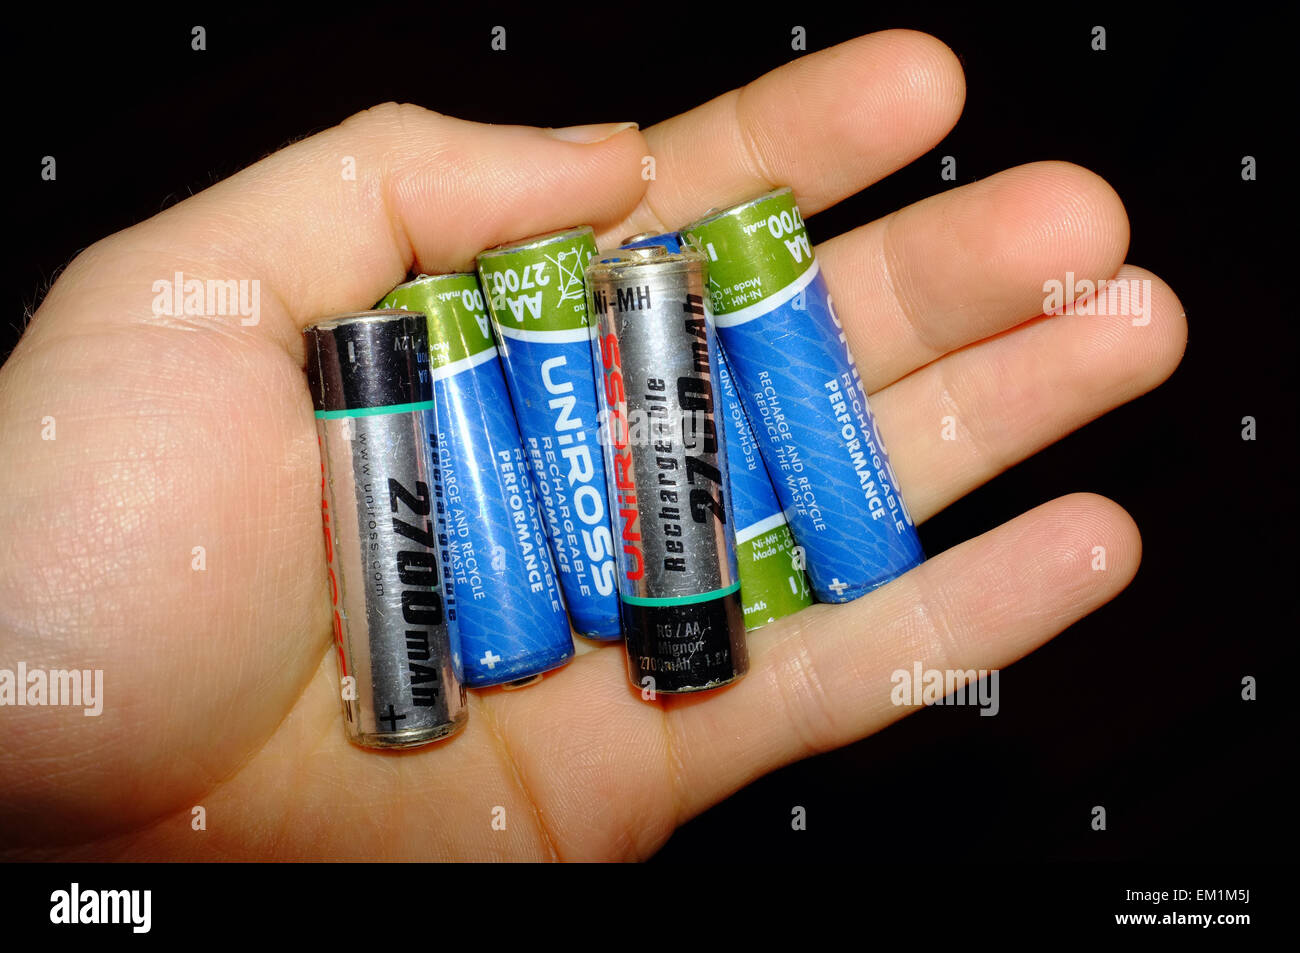 A white hand holding a AA rechargeable batteries against a black background. - Stock Image